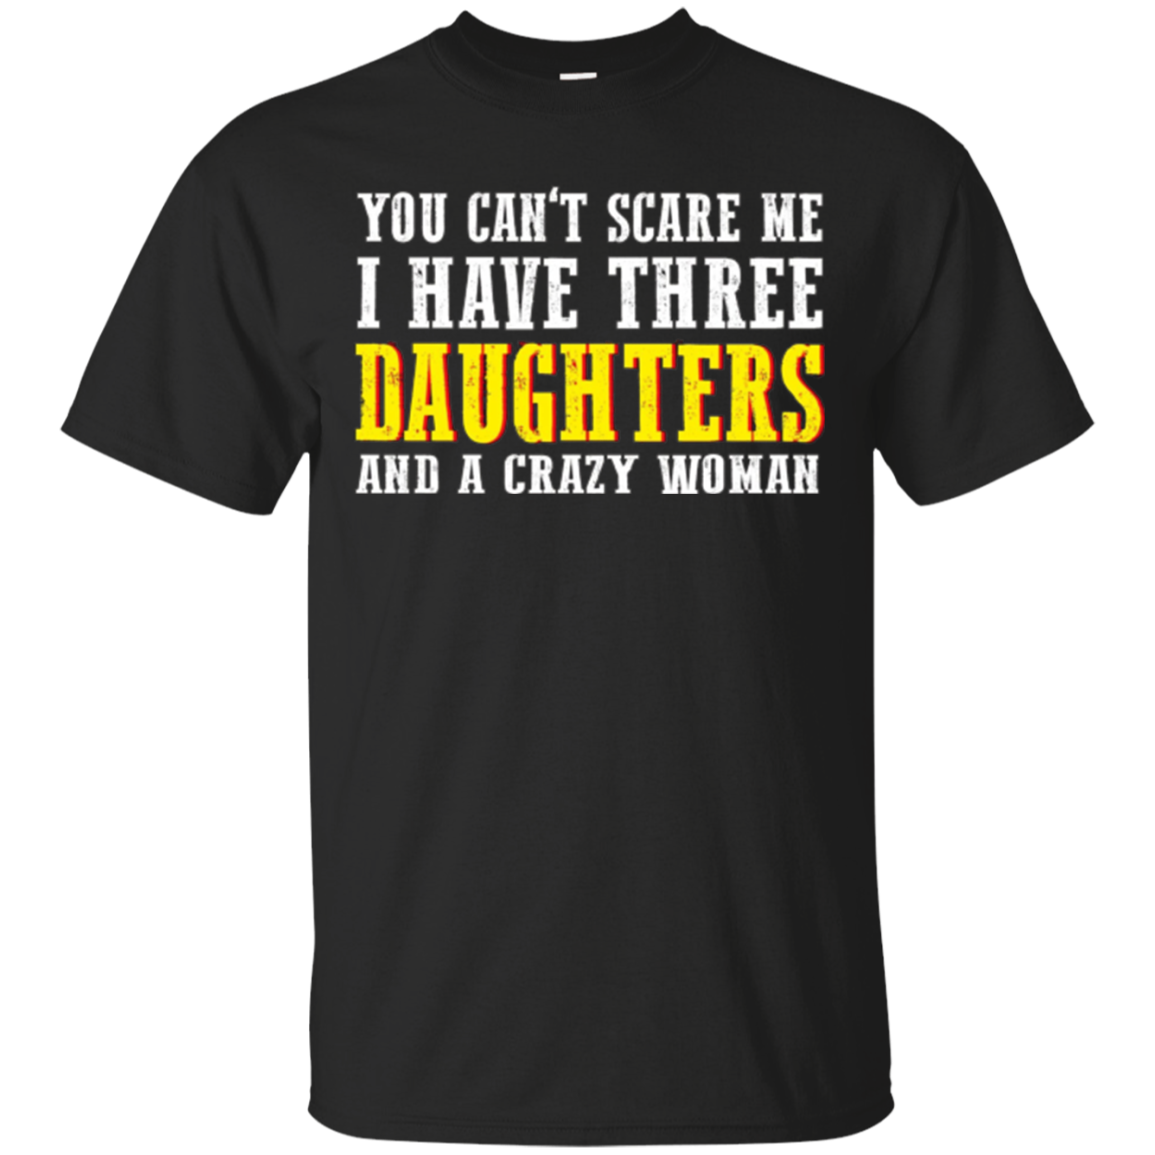 Mens YOU CAN'T SCARE ME THREE DAUGHTERS T Shirt & A CRAZY WOMAN